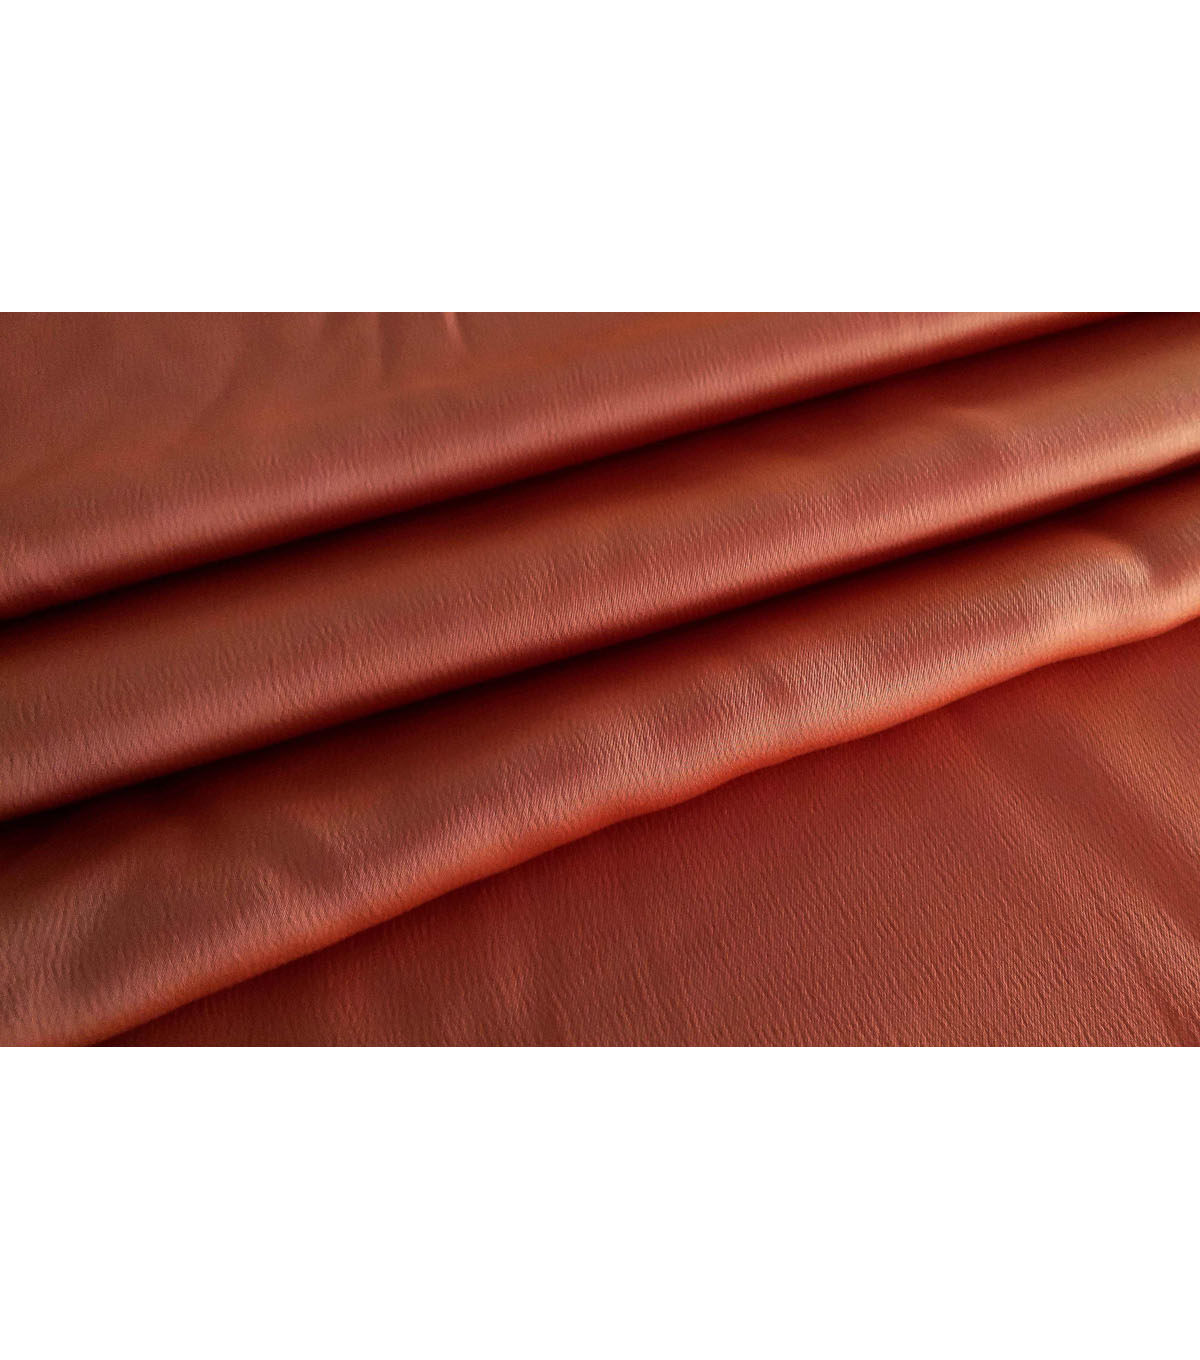 Silky Stretch Satin Fabric-Textured Solids